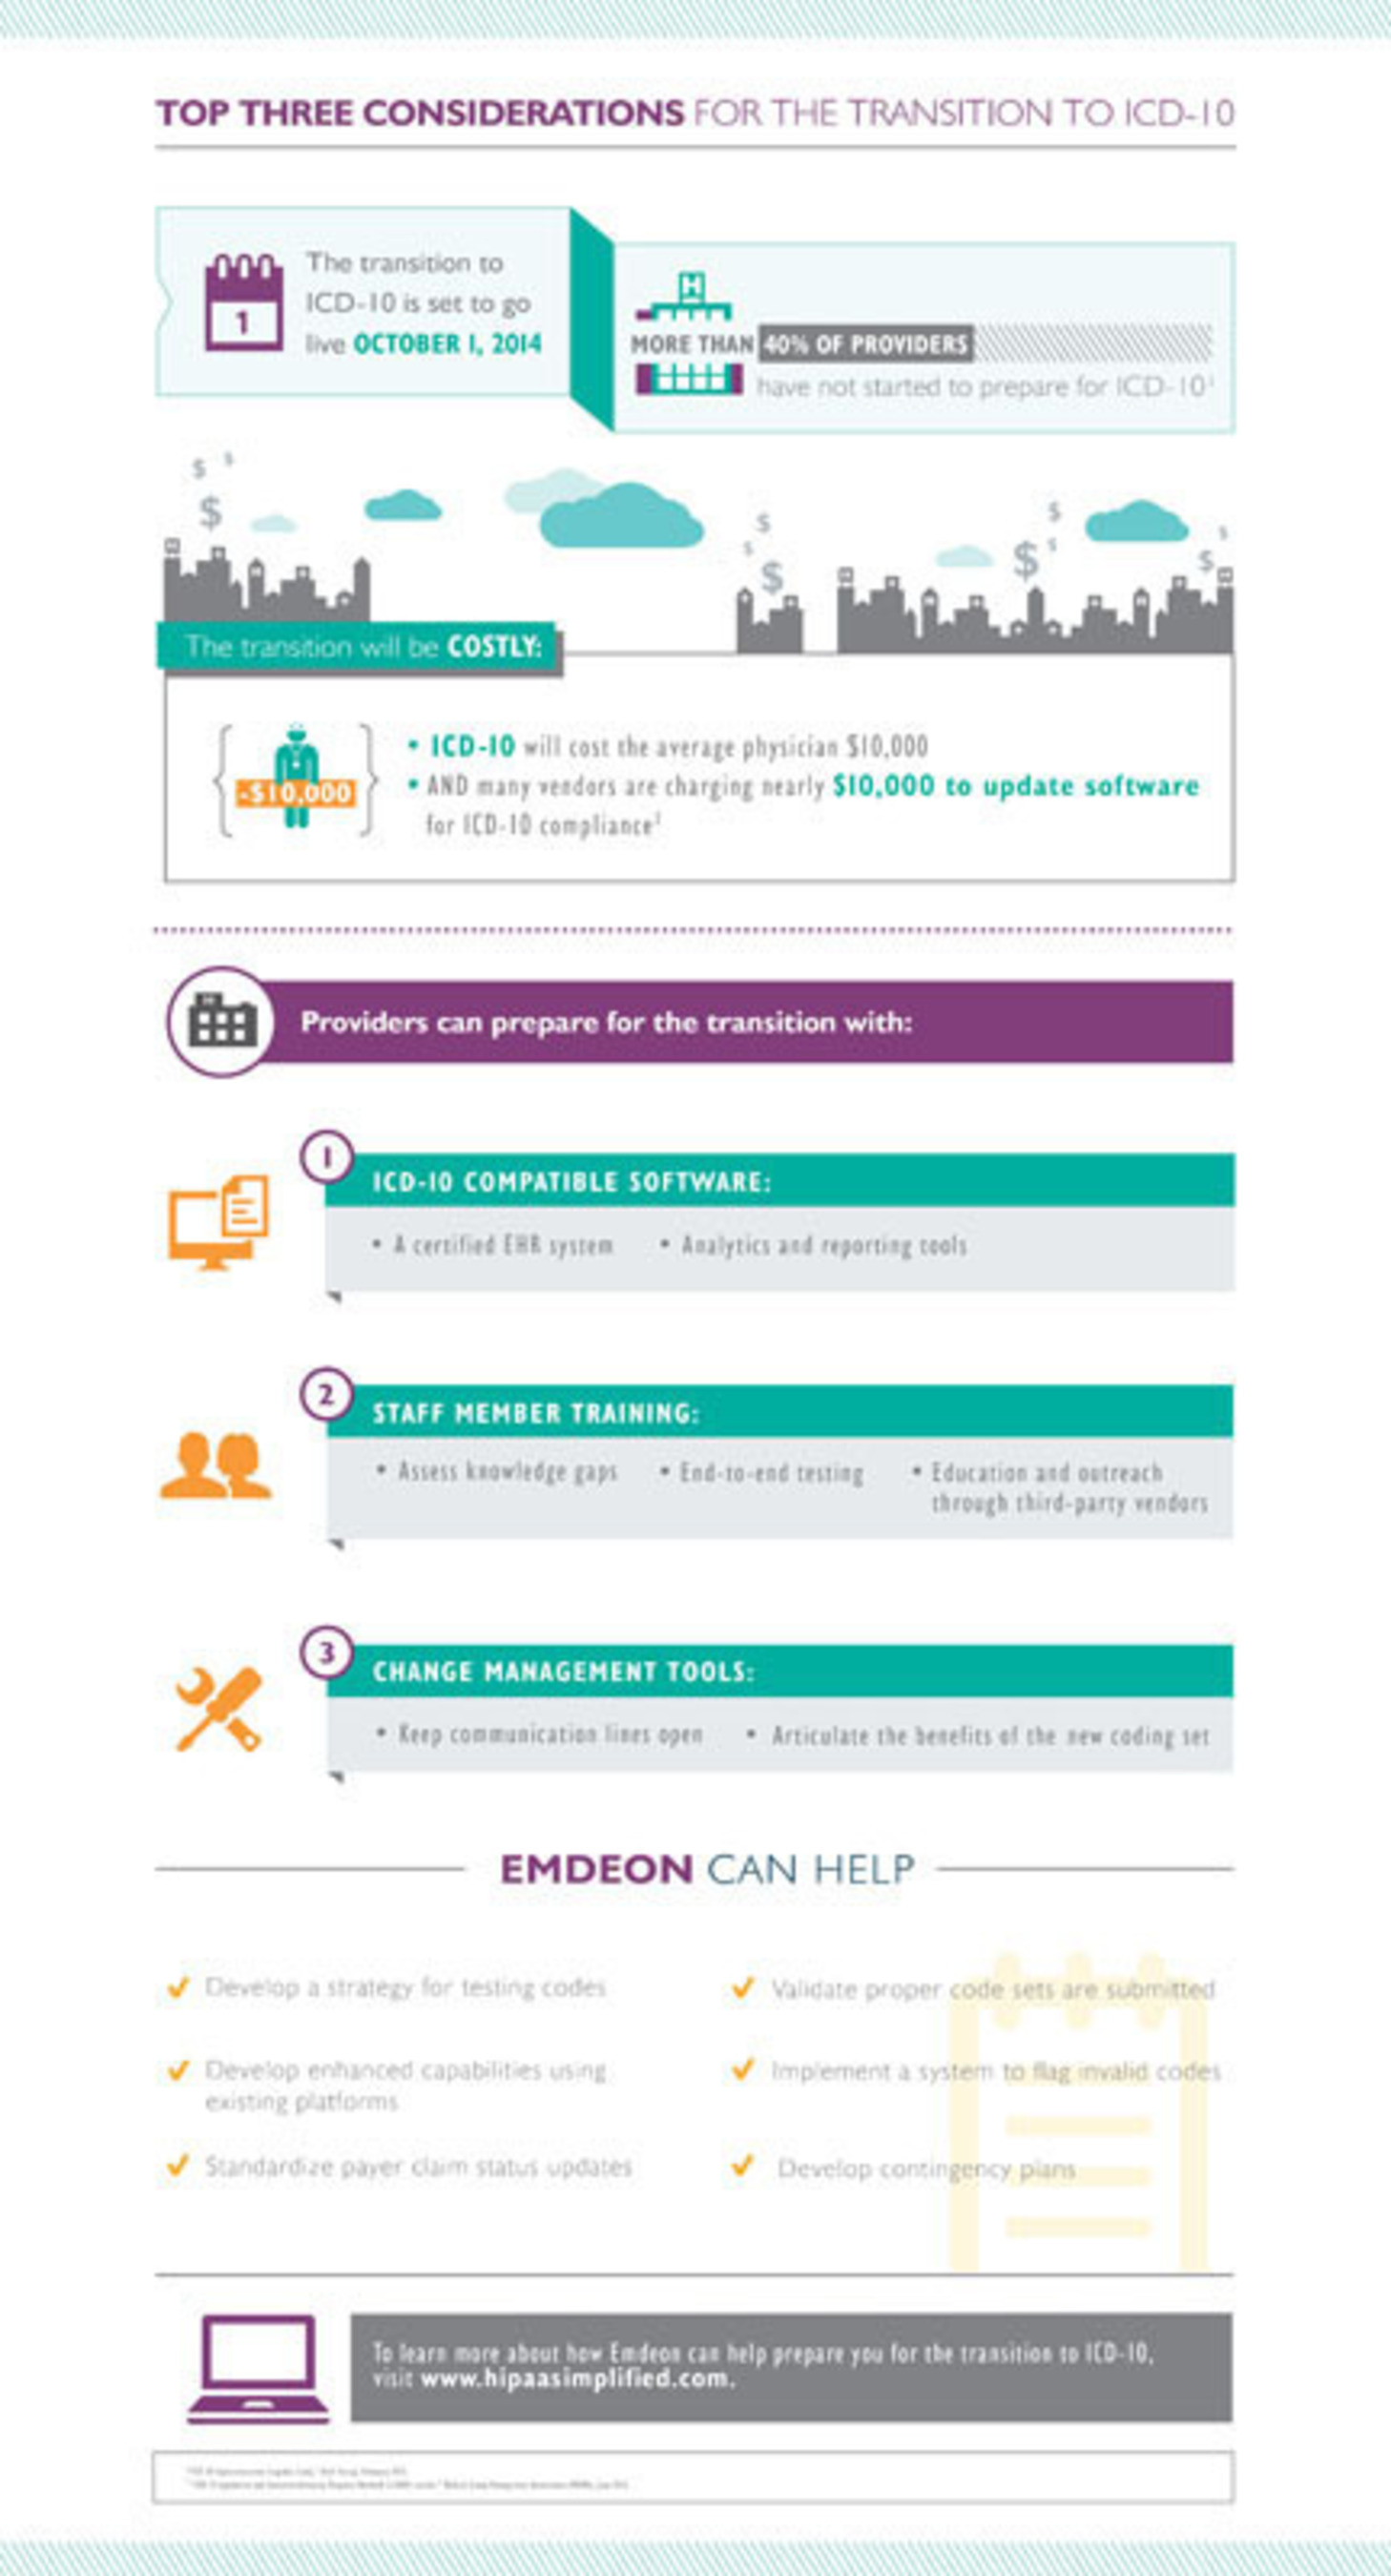 Emdeon Releases Top Three Considerations for the Transition to ICD-10. Whitepaper also available at ...